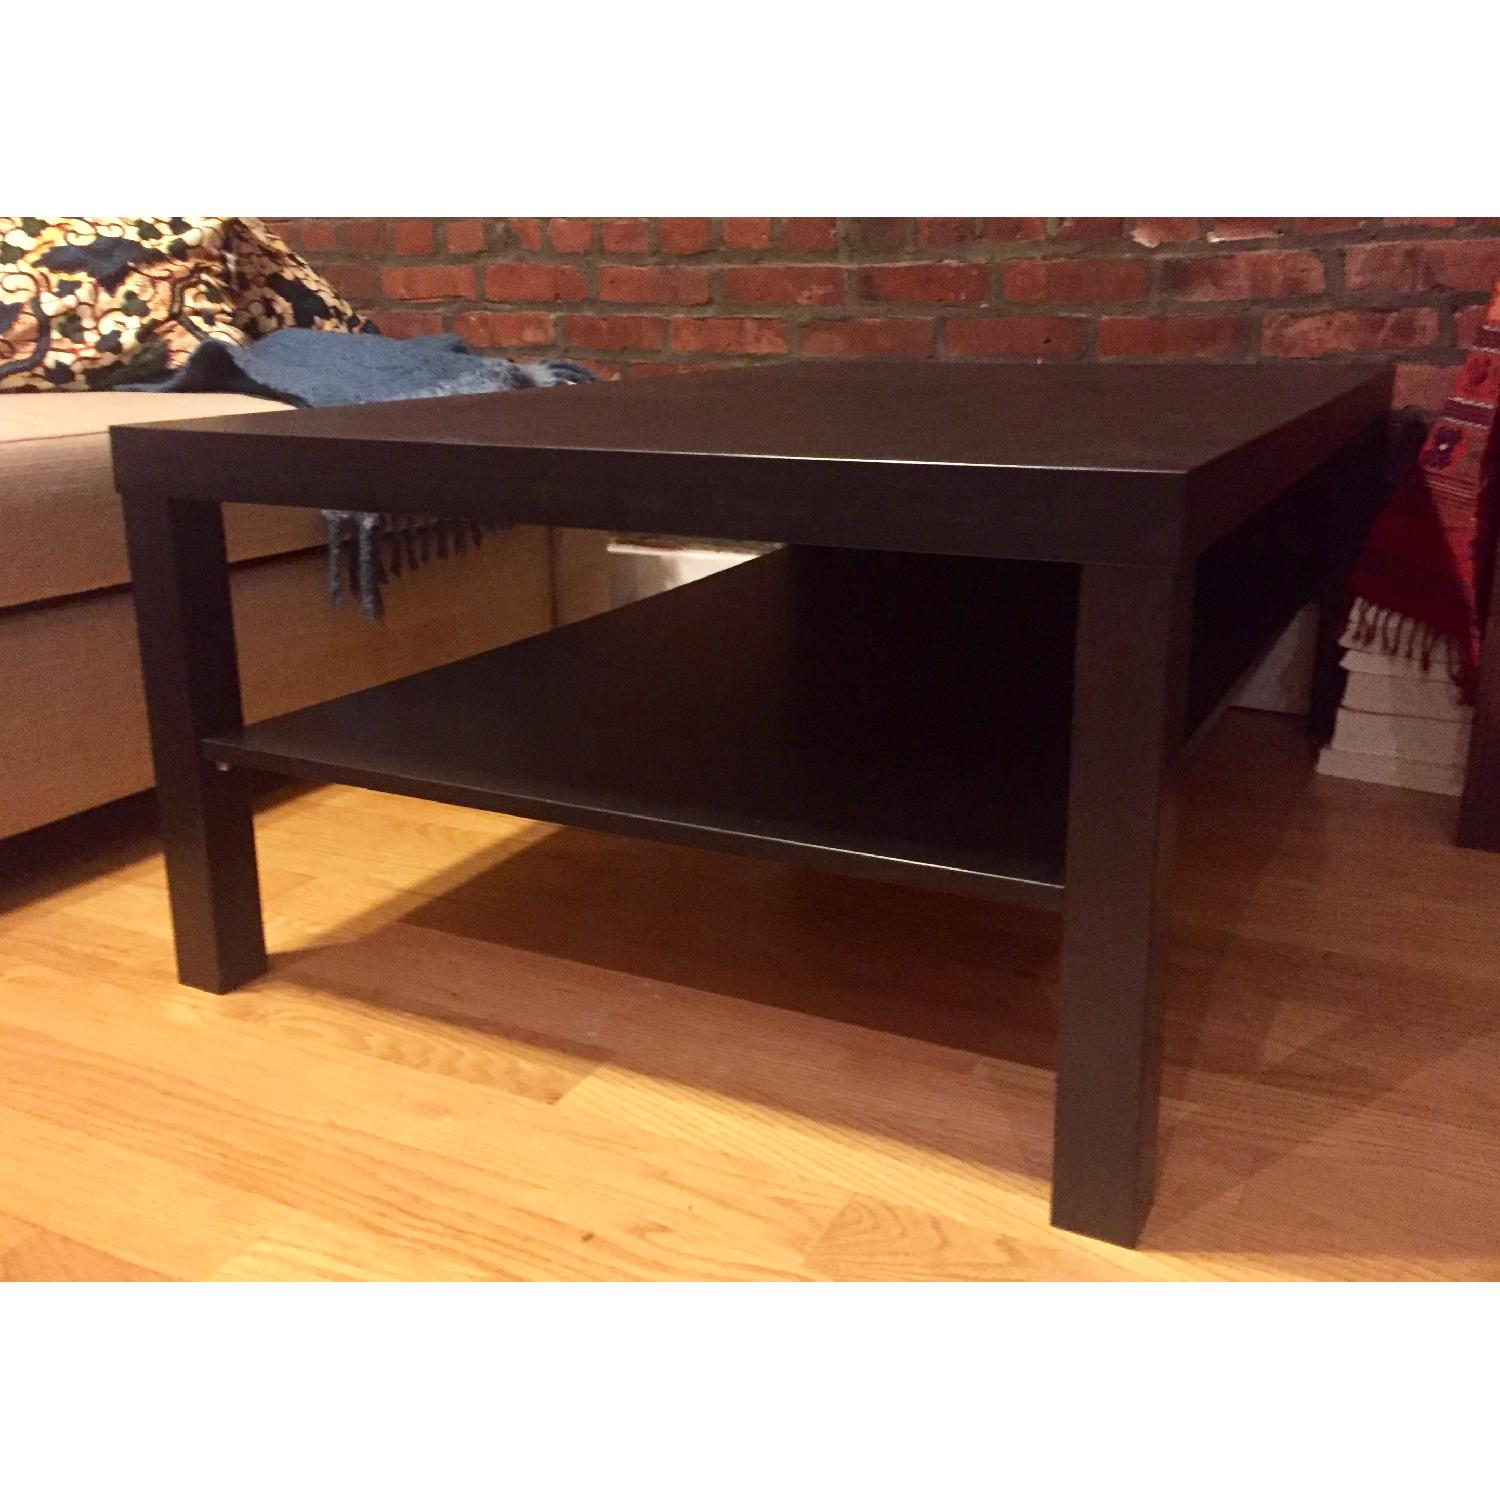 Ikea Lack Black Coffee Table - image-2